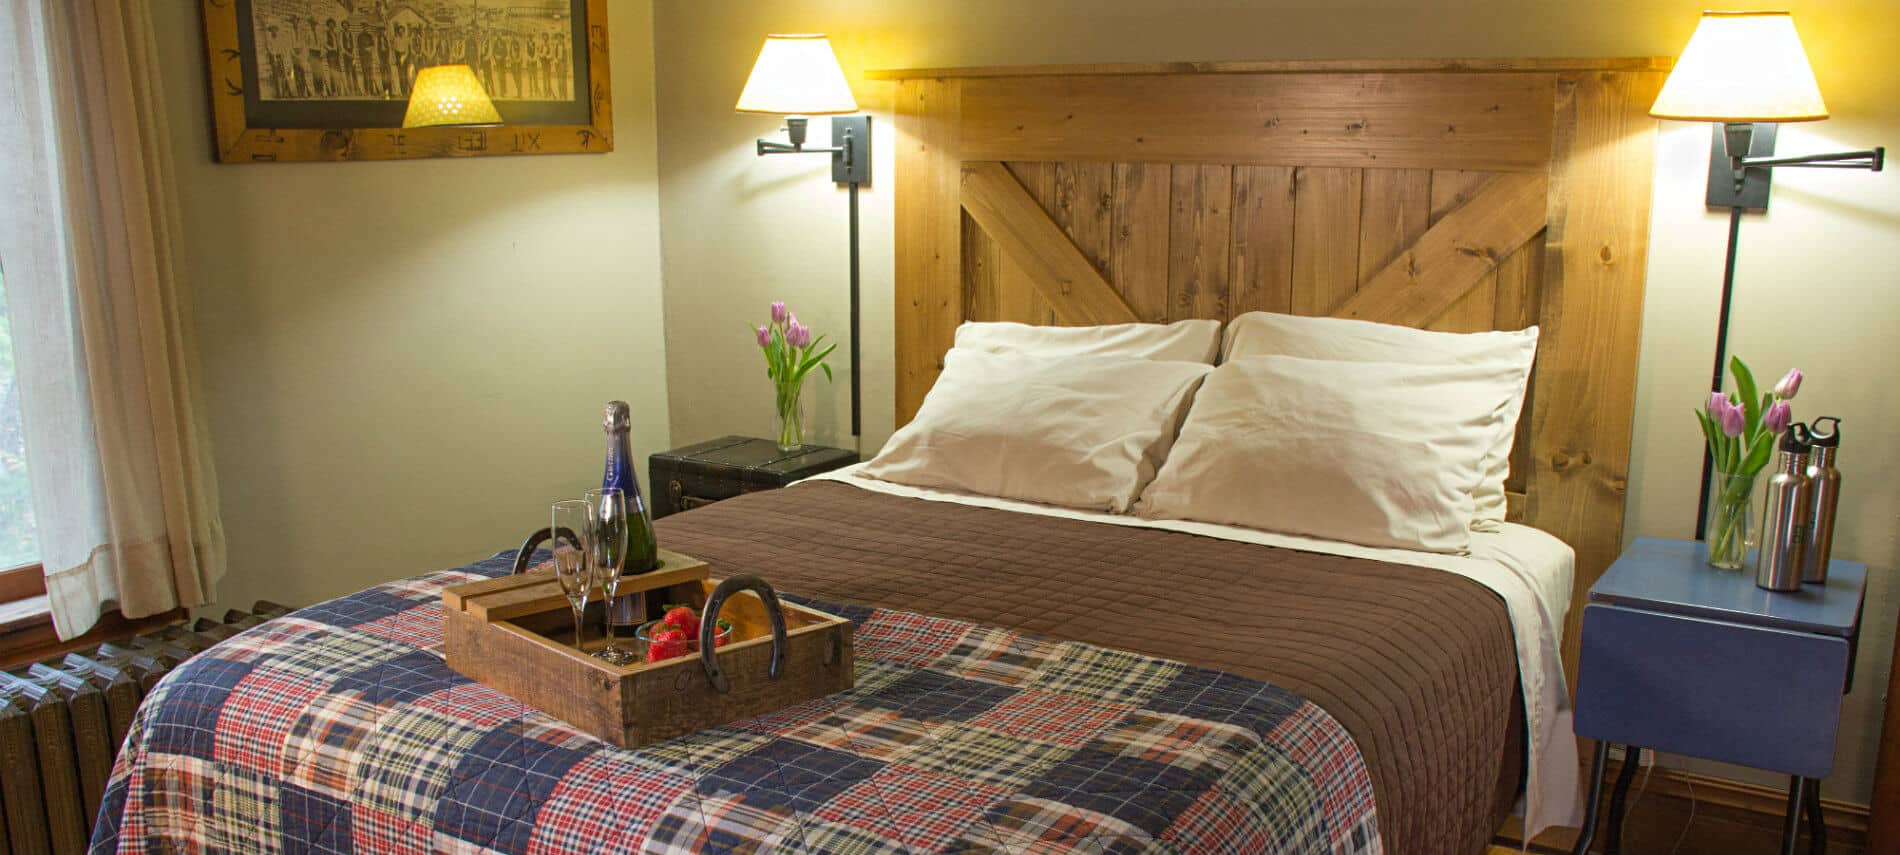 Beige guest room, bed with plaid quilt and rustic wood headboard, tray of strawberries and champagne, nightstands and reading lights